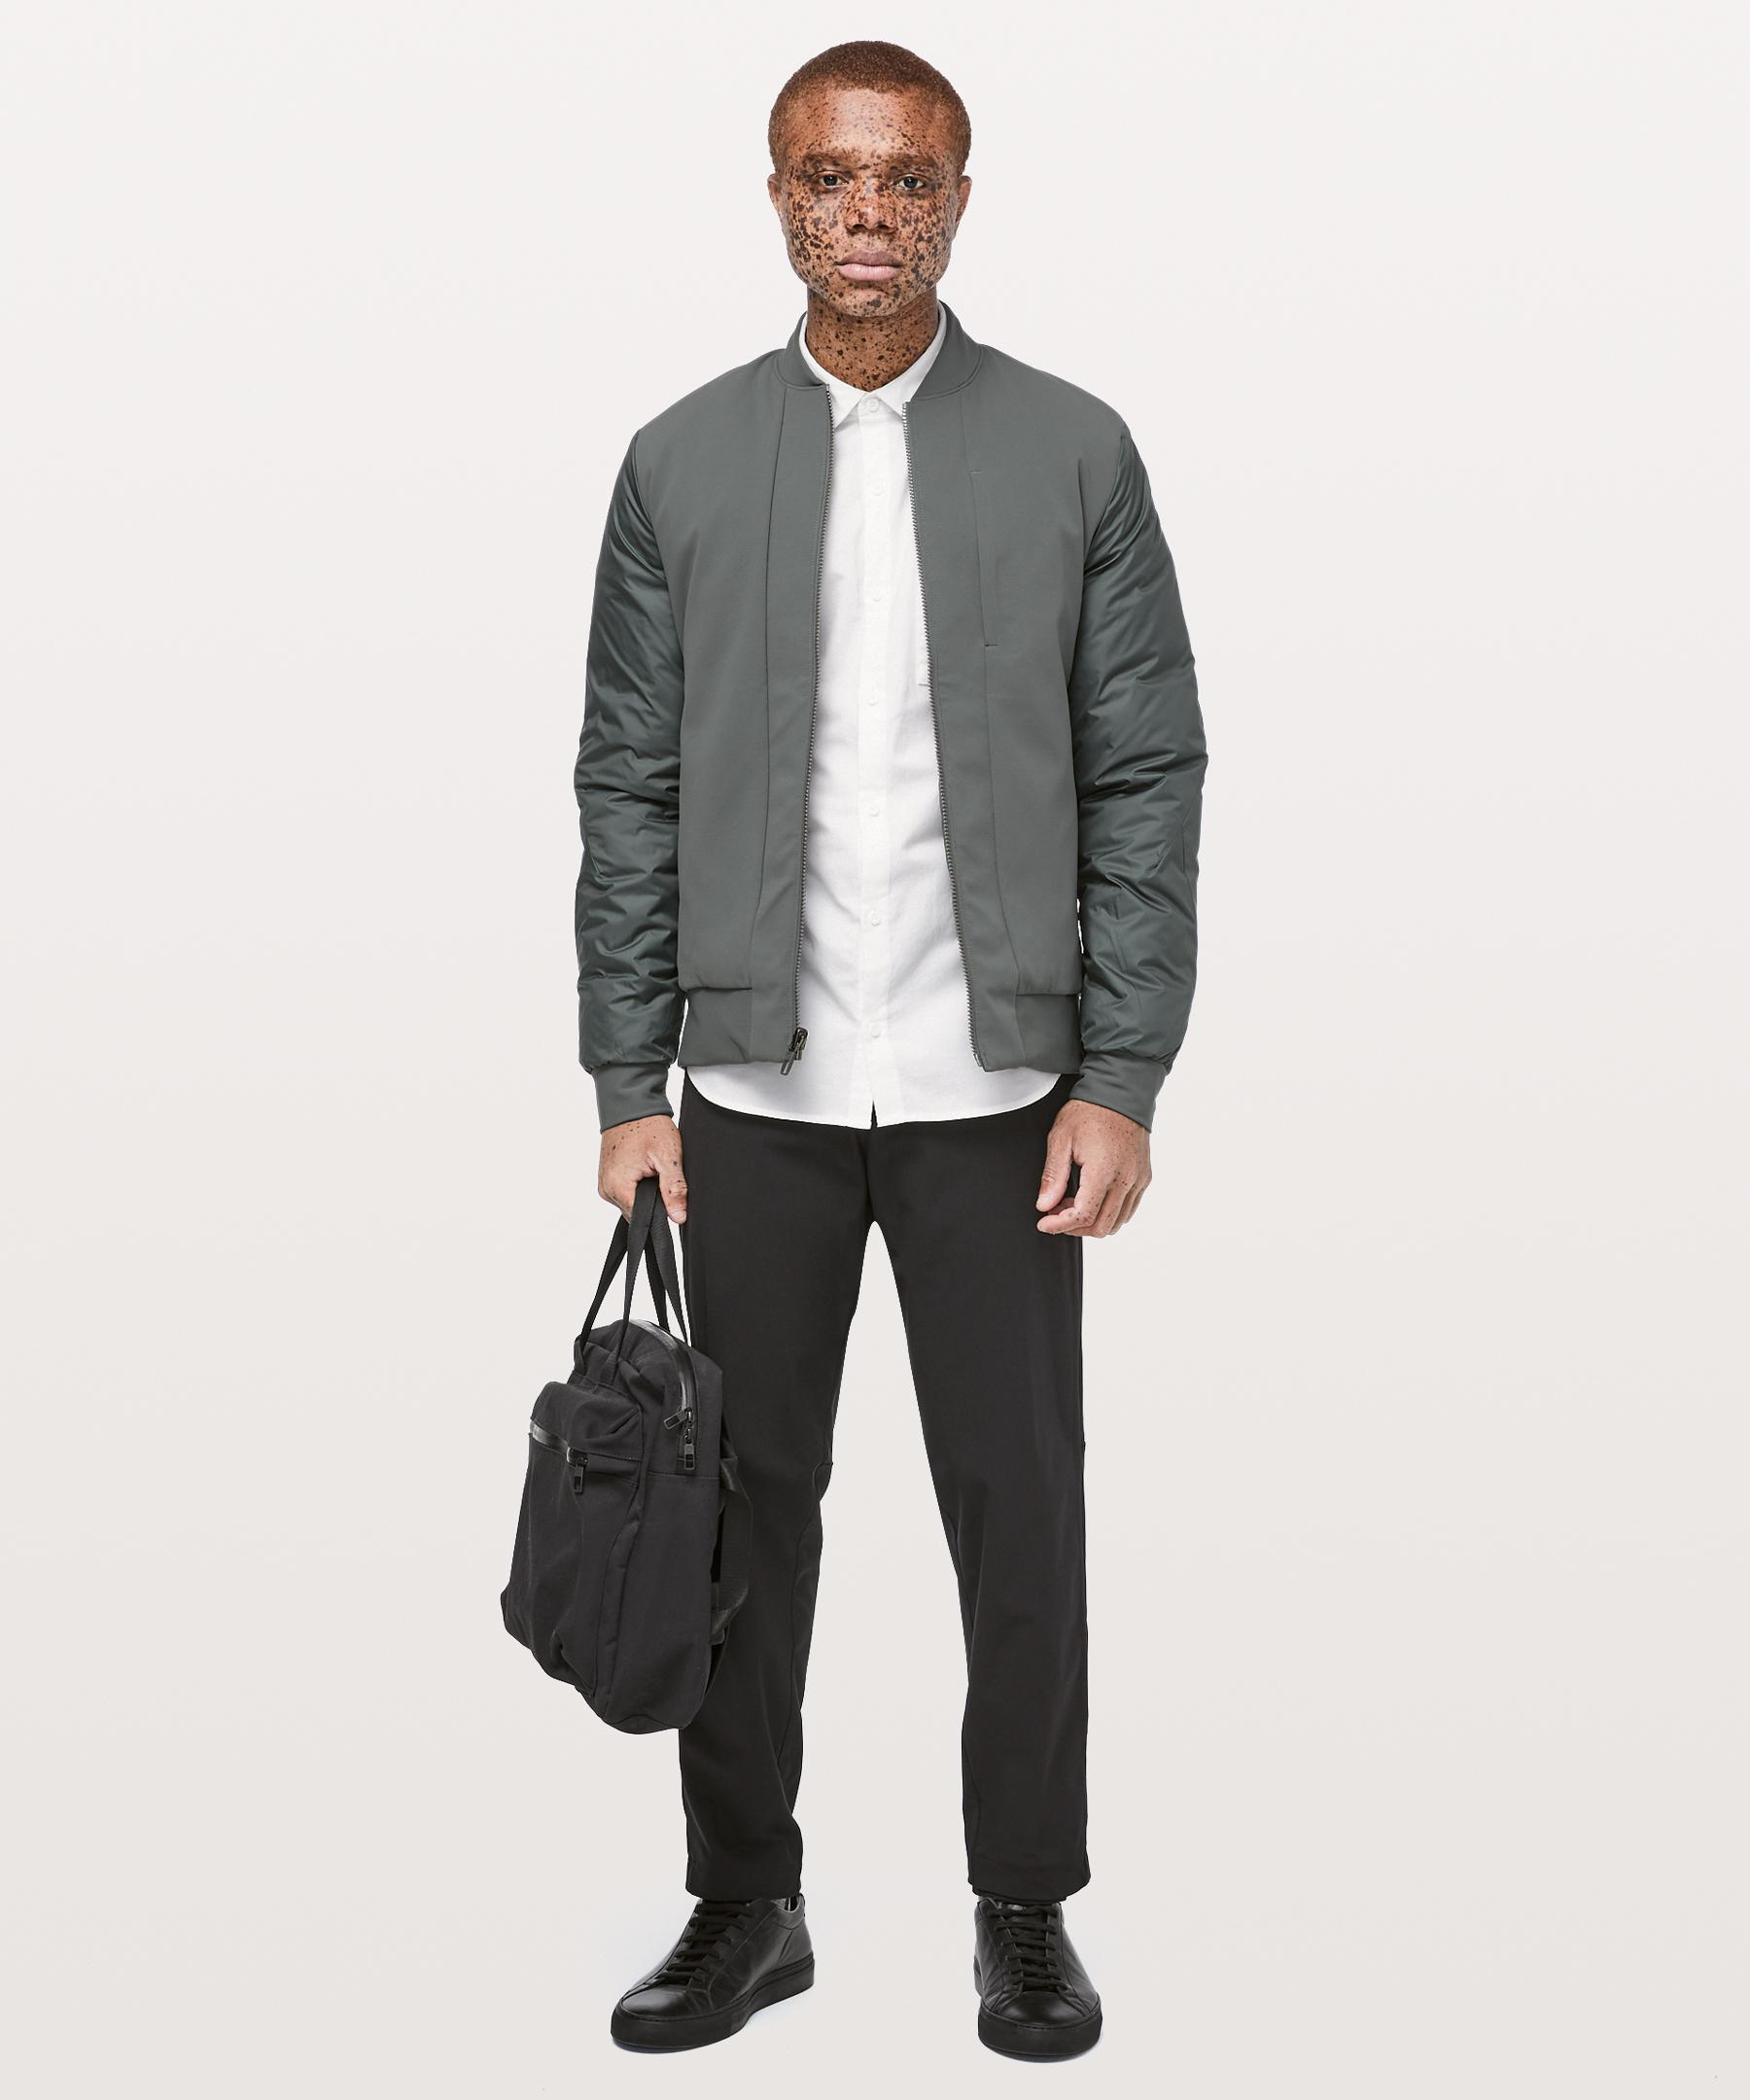 f64cd27bd lululemon athletica Goose About Face Bomber in Gray for Men - Lyst